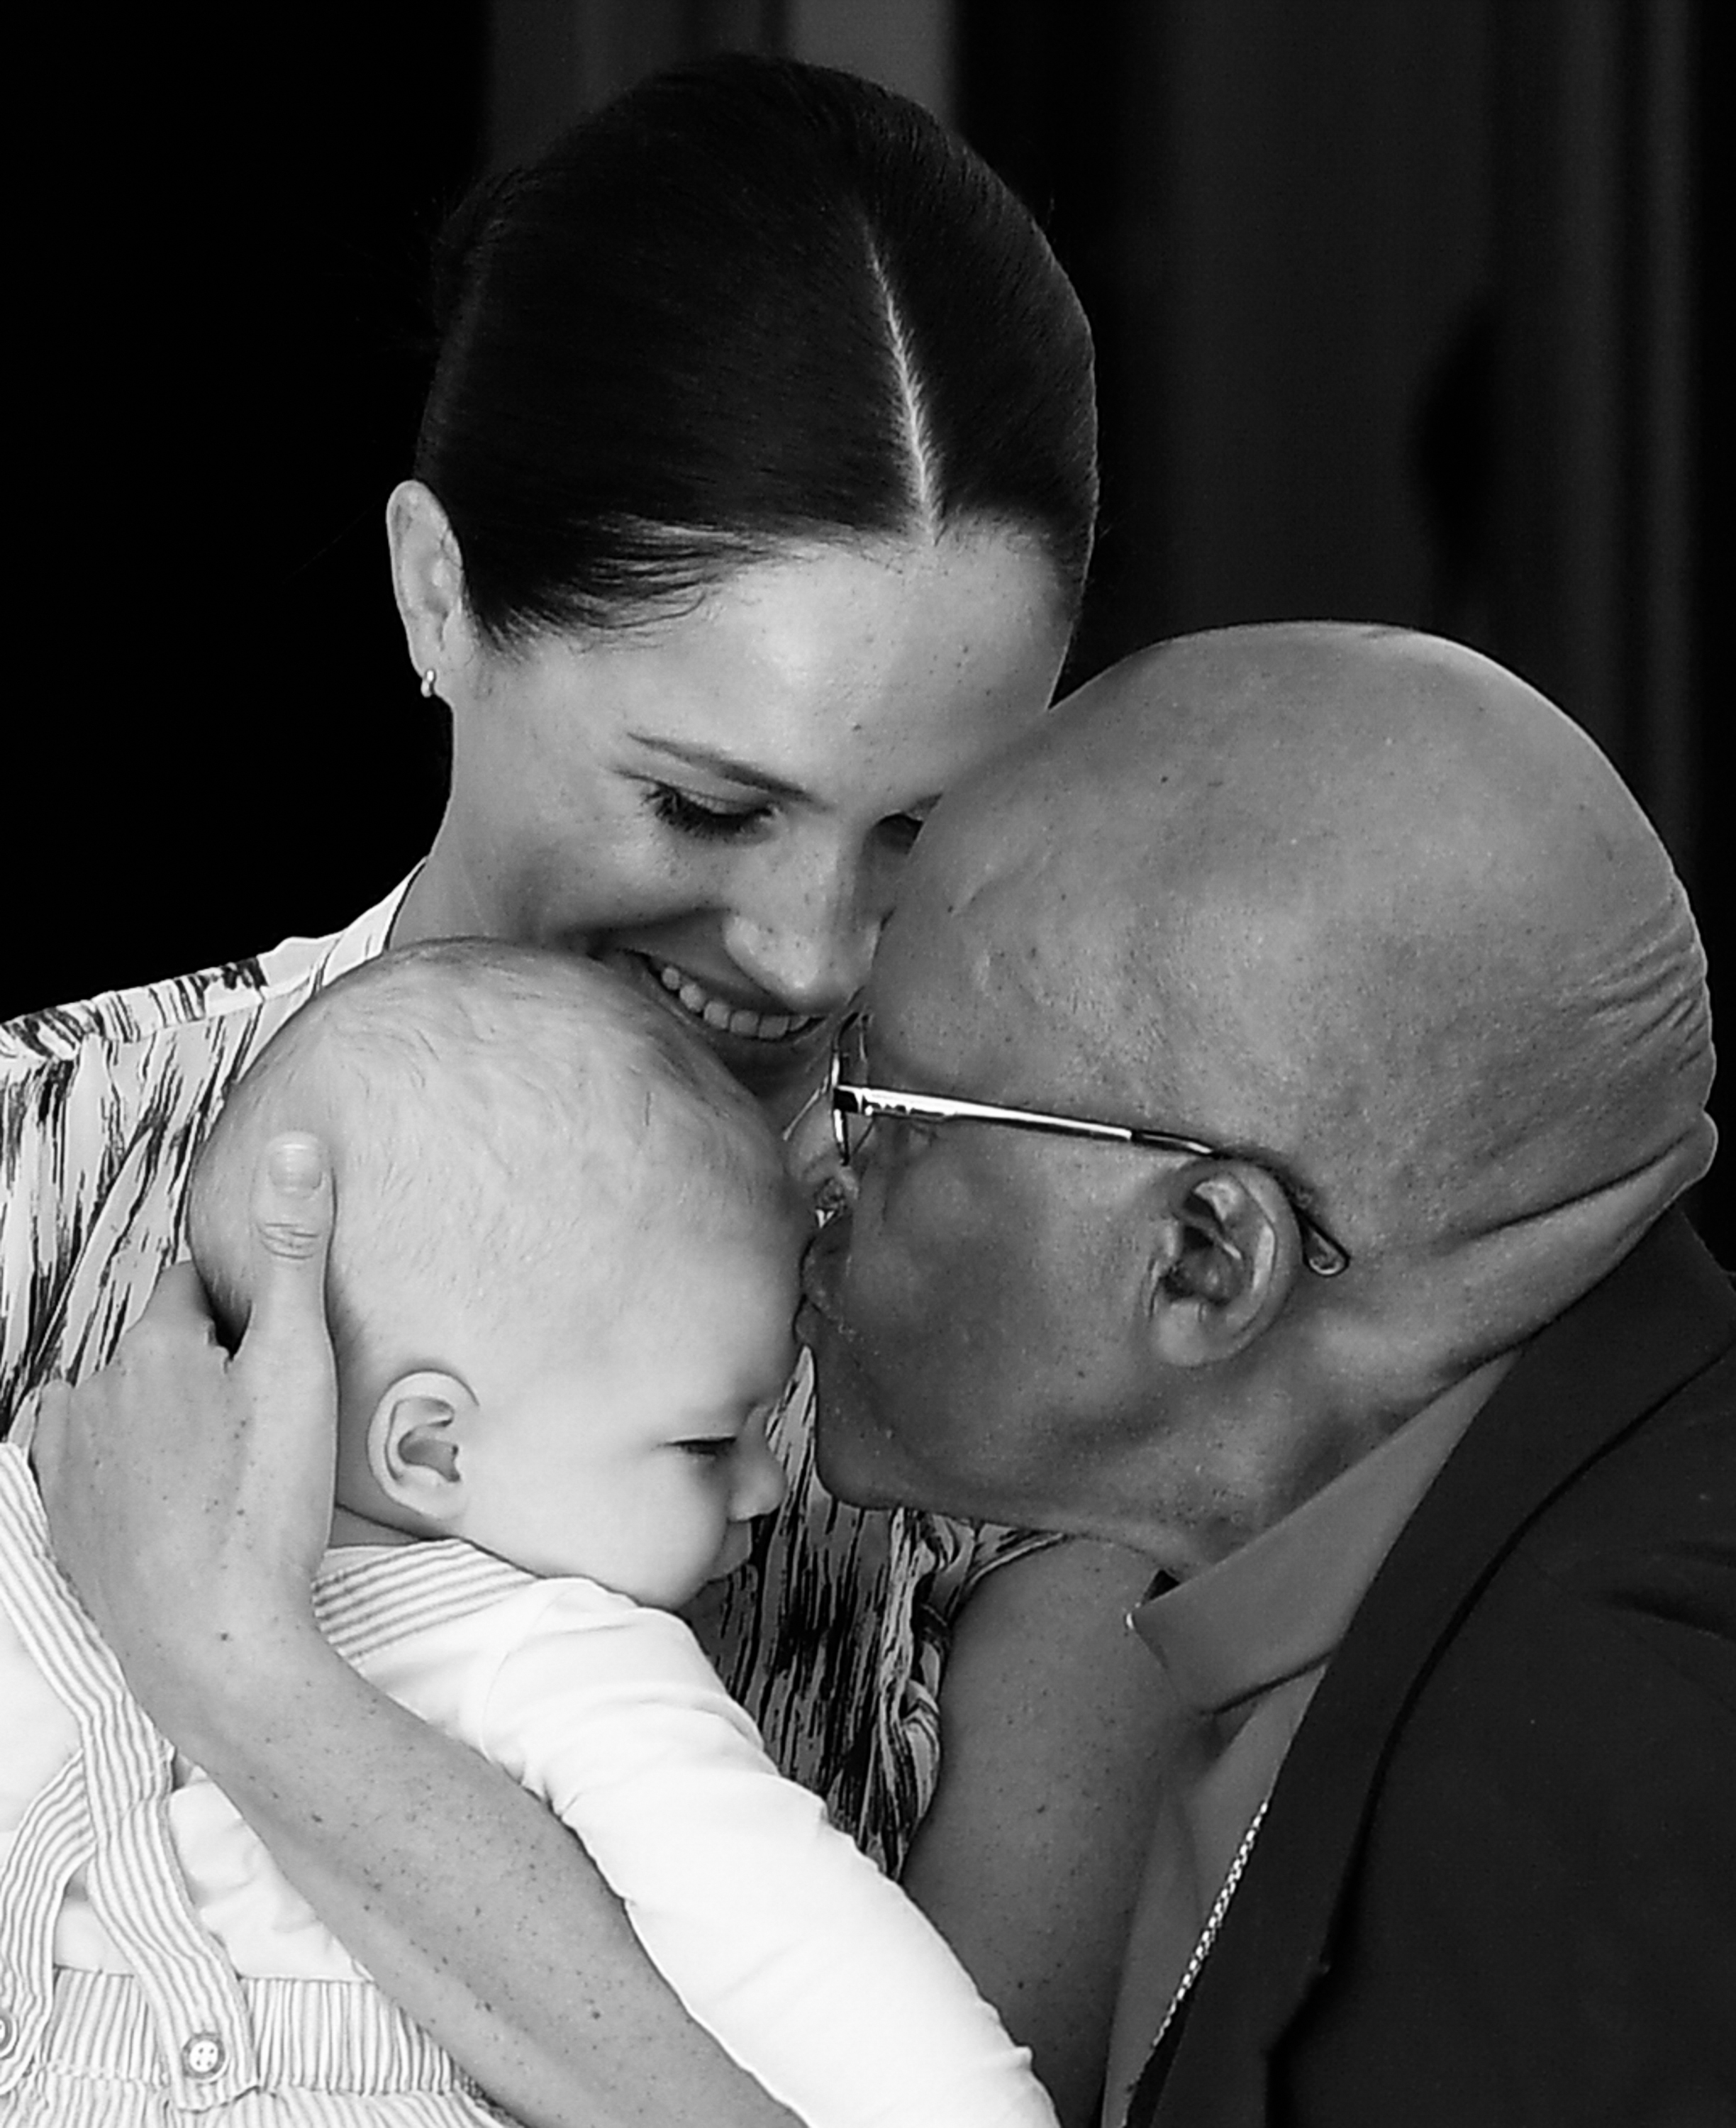 CAPE TOWN, SOUTH AFRICA - SEPTEMBER 25: (EDITORS NOTE: Image has been converted to black and white) Prince Harry, Duke of Sussex, Meghan, Duchess of Sussex and their baby son Archie Mountbatten-Windsor meet Archbishop Desmond Tutu and his daughter Thandeka Tutu-Gxashe at the Desmond & Leah Tutu Legacy Foundation during their royal tour of South Africa on September 25, 2019 in Cape Town, South Africa. (Photo by Toby Melville/Pool/Samir Hussein/WireImage)